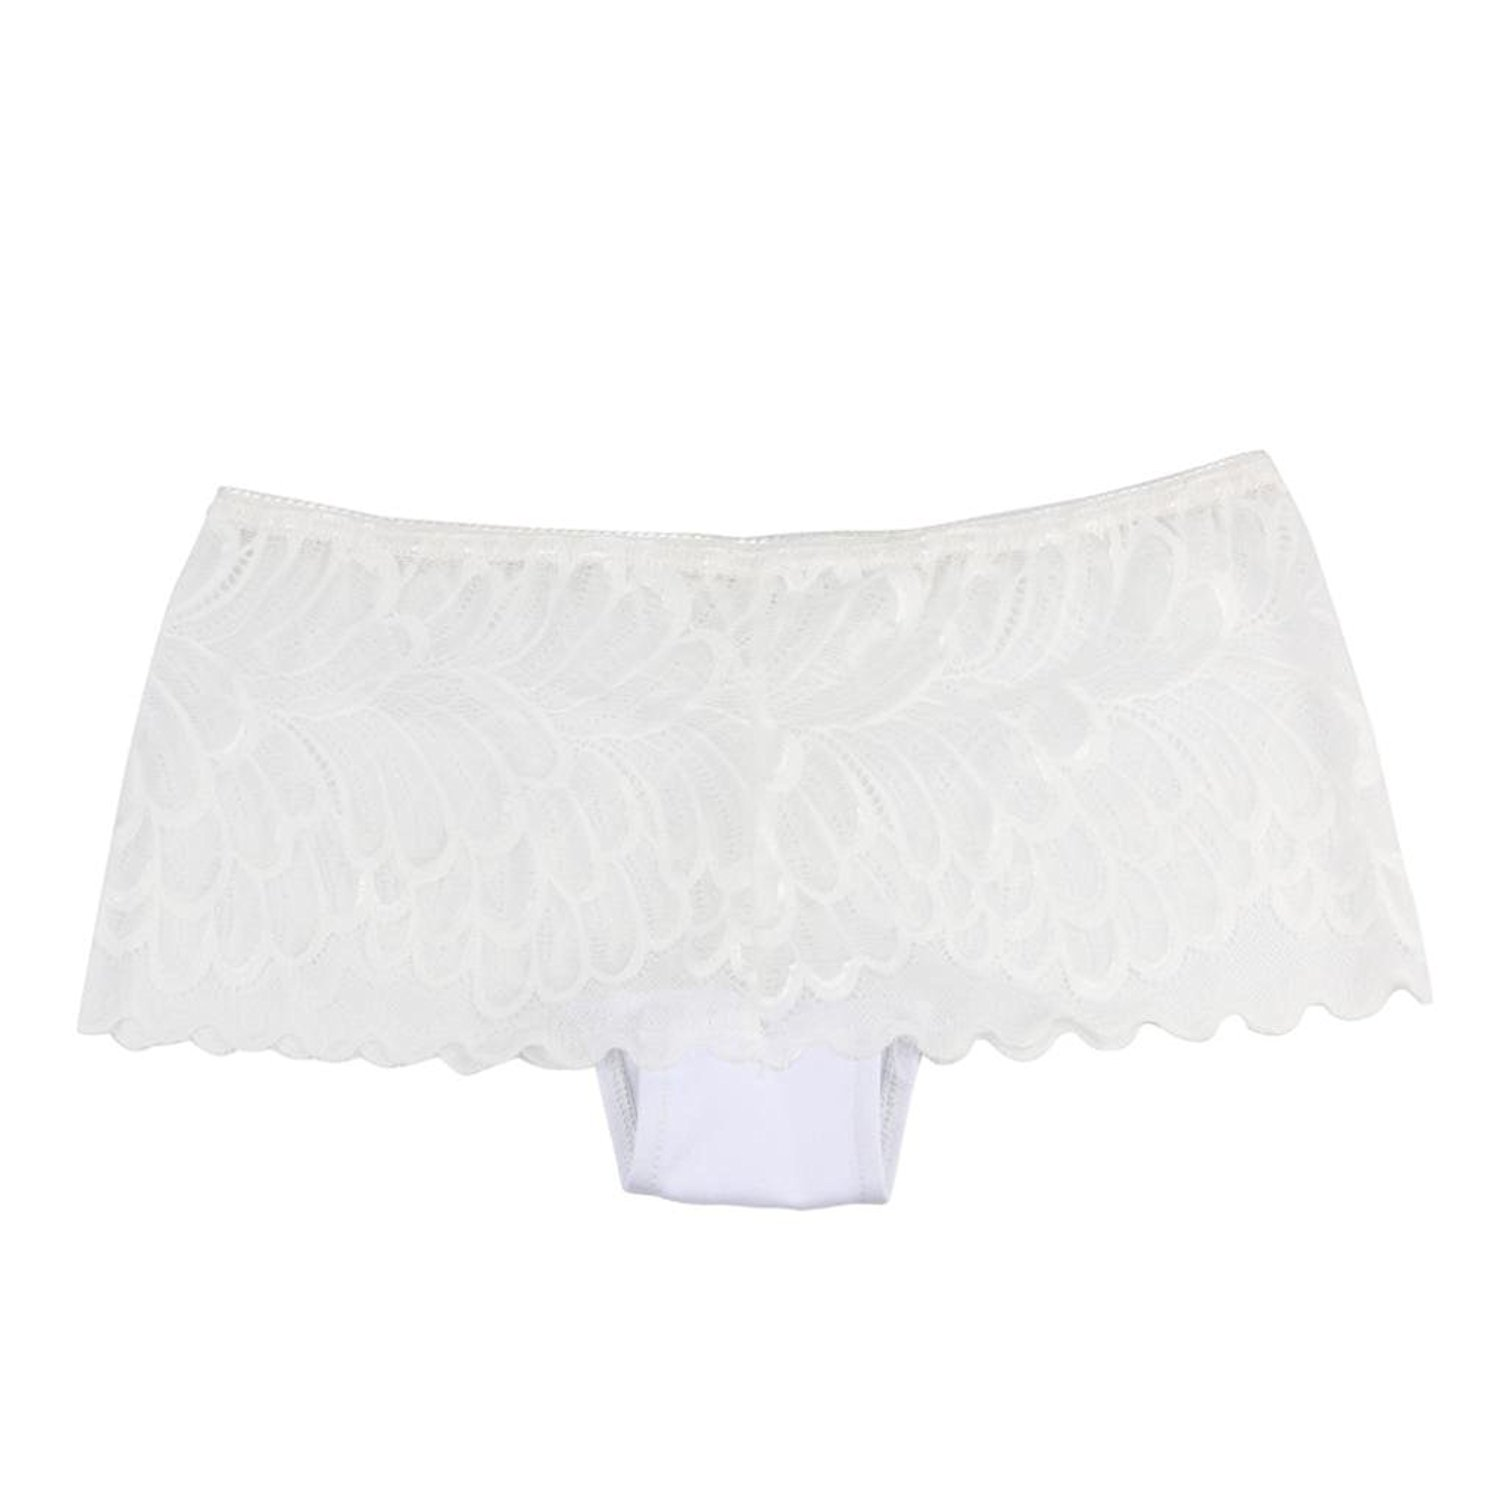 0d0d15ef924ad Get Quotations · Clearance Sales Lace Sexy Low Waist Wings Thongs Underwear  AfterSo G-String Bottoms Panties Underpants